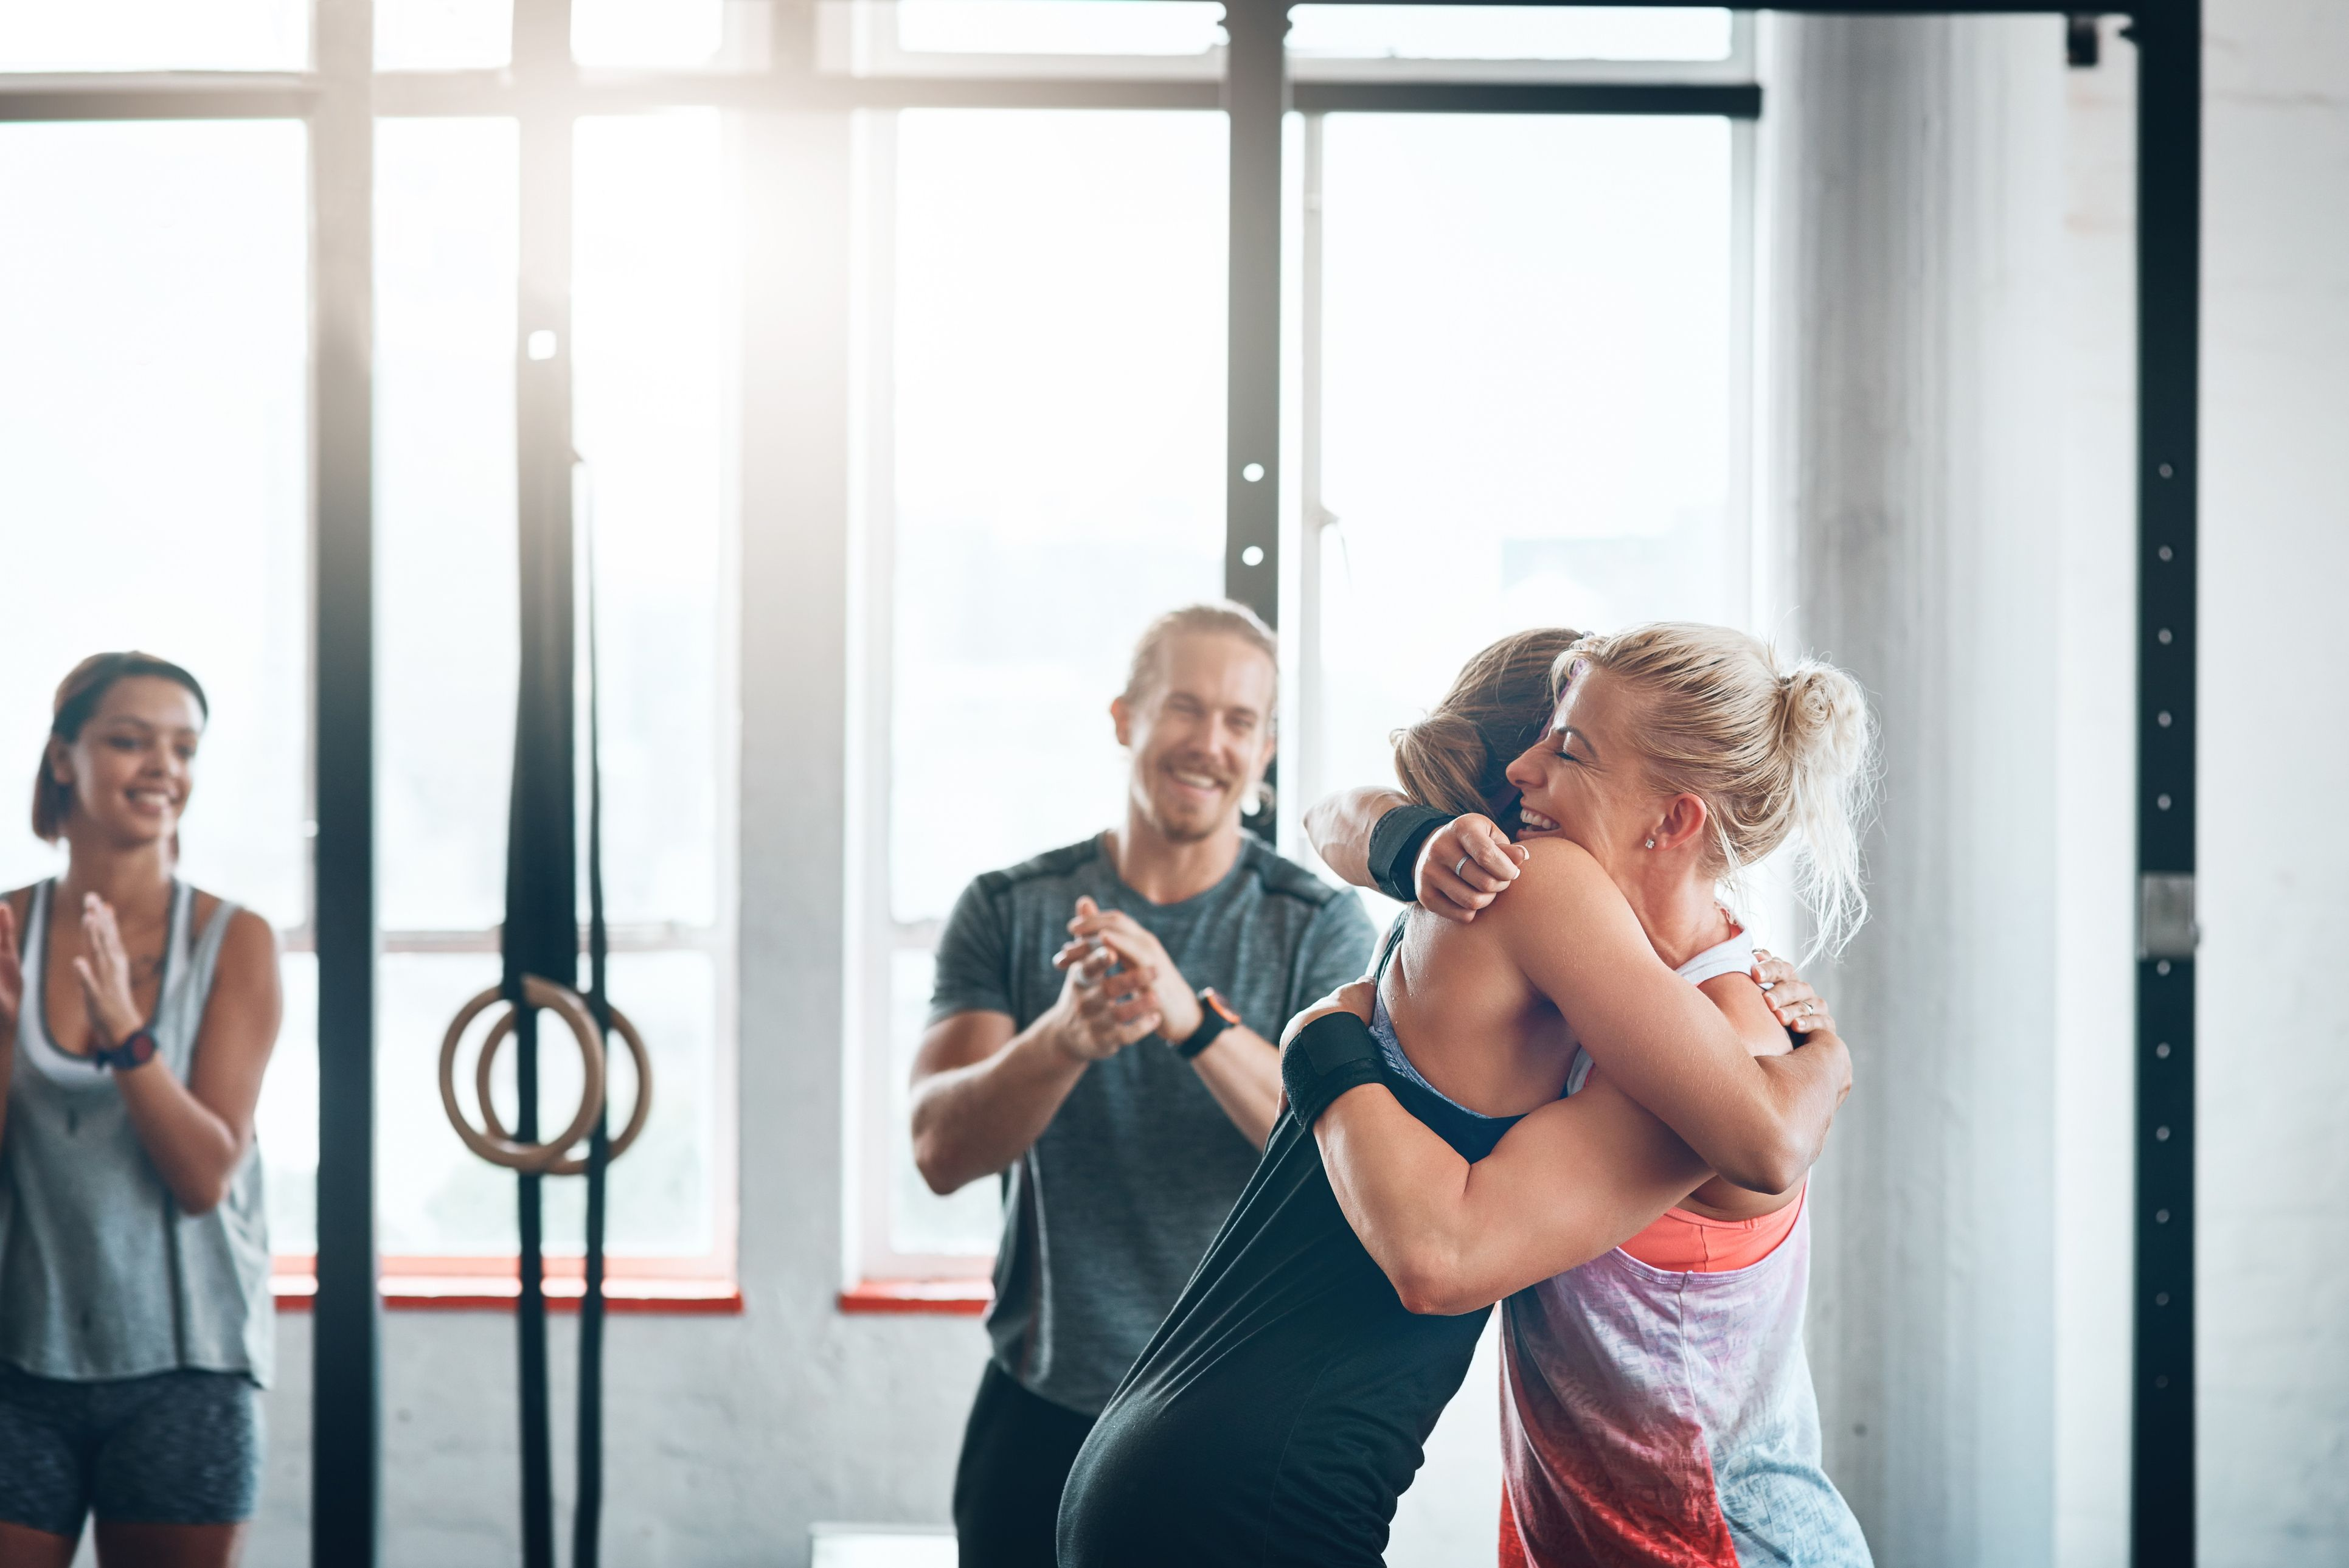 Workouts Were New to Us All Once – The WH Exercise for Beginners Guide